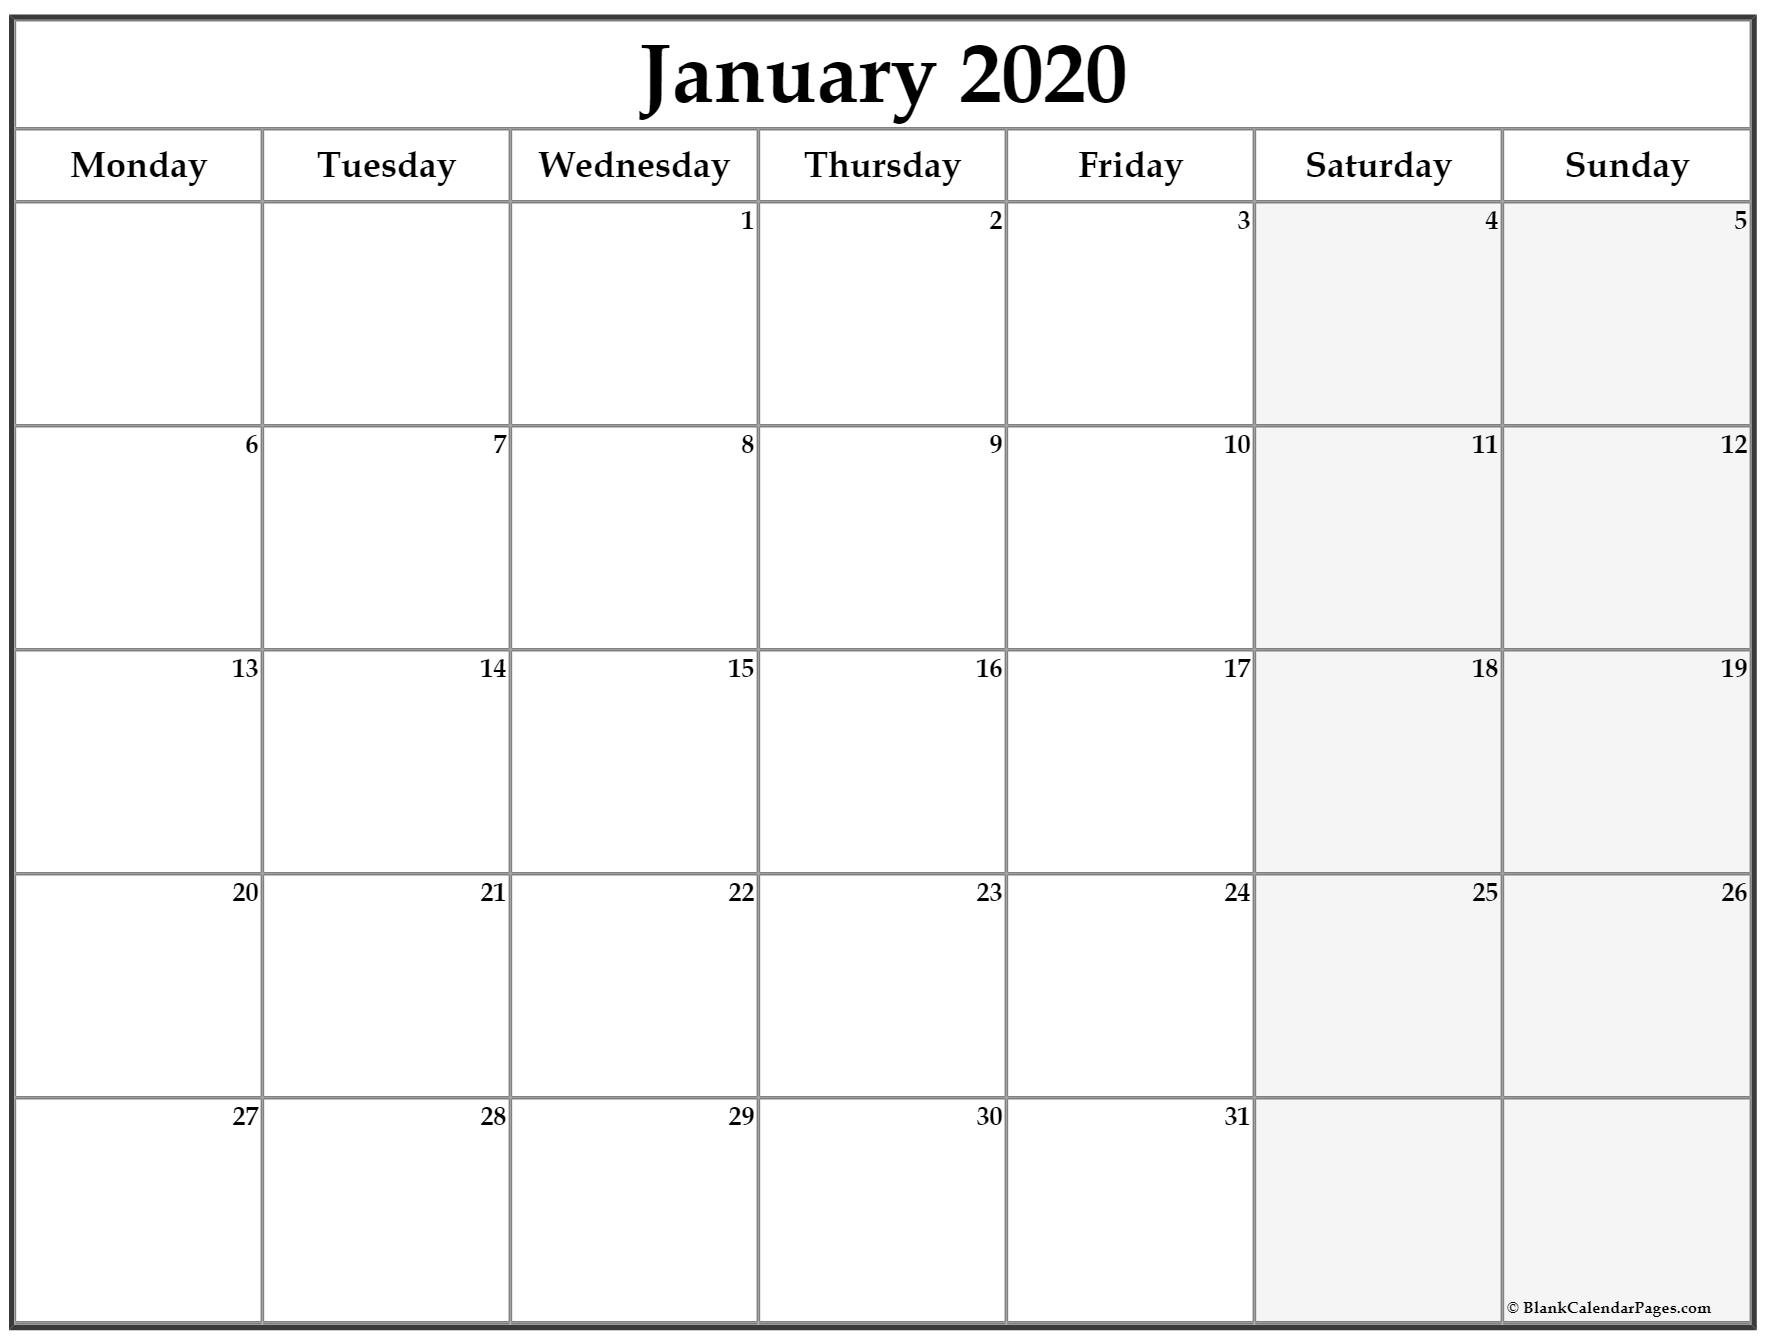 January 2020 Monday Calendar | Monday To Sunday Printable Calender For Mon Through Friday